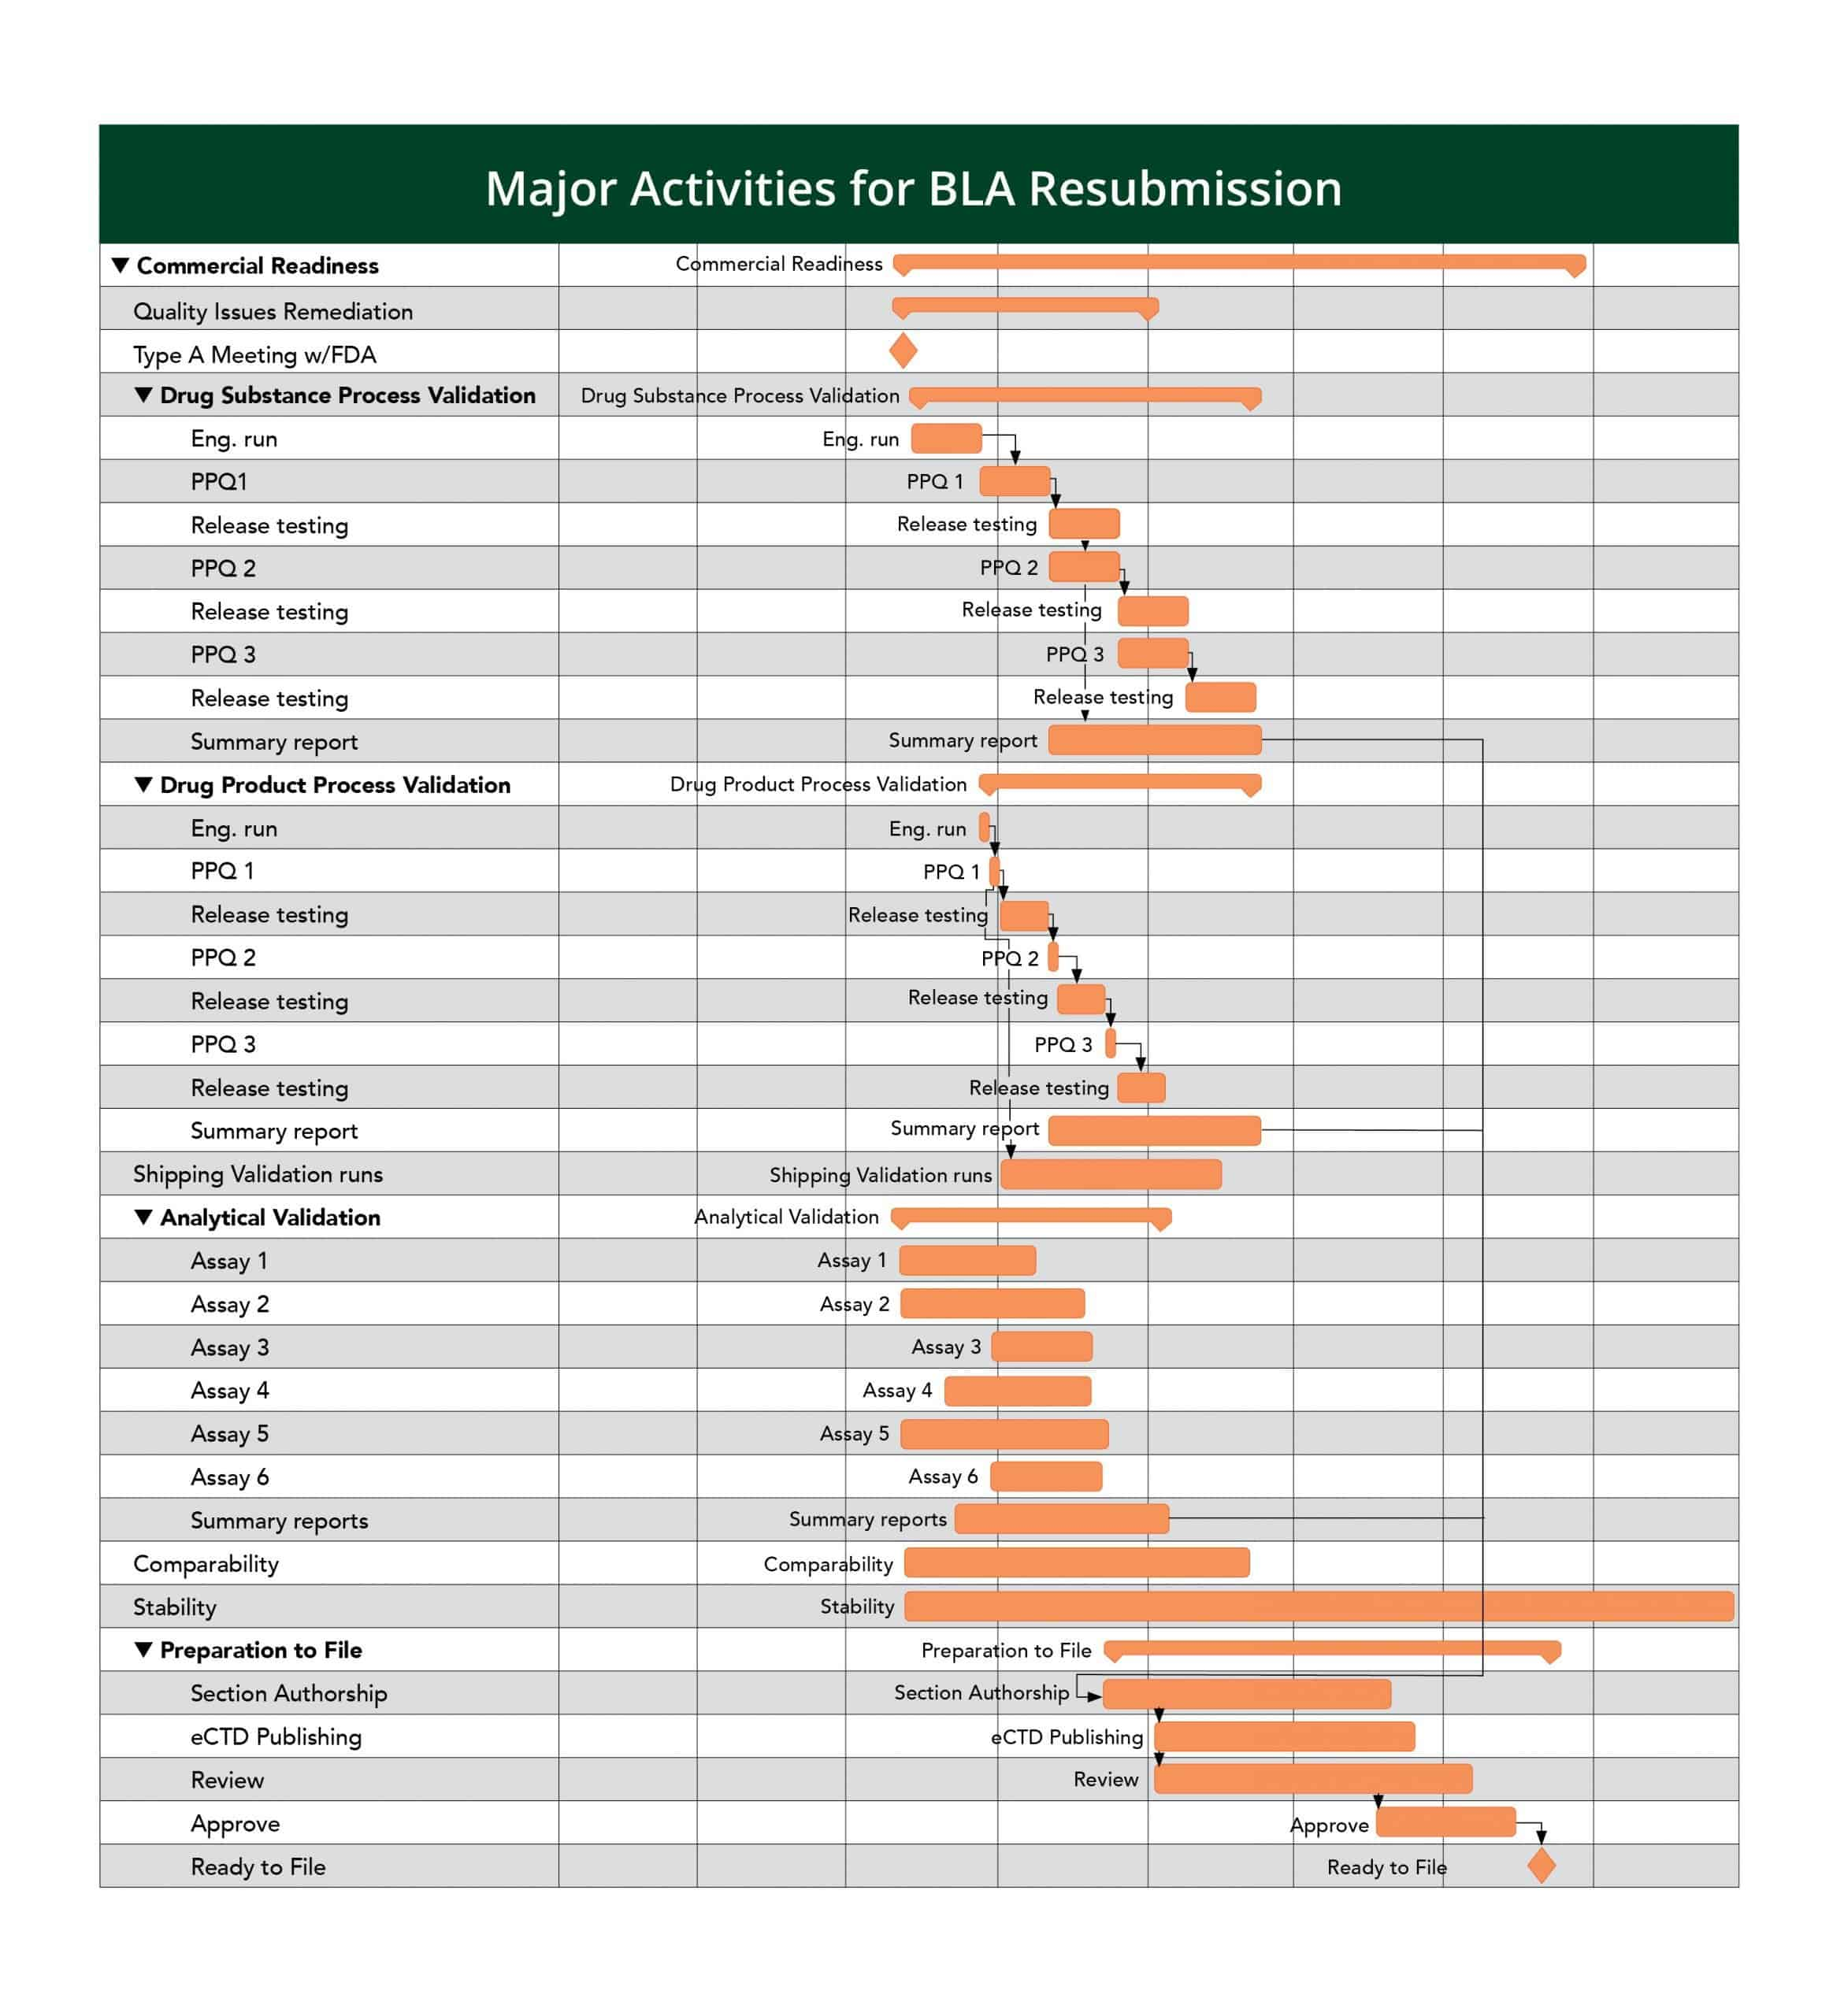 This is a sample gantt chart demonstrating some of the primary activities taken before a BLA resubmission